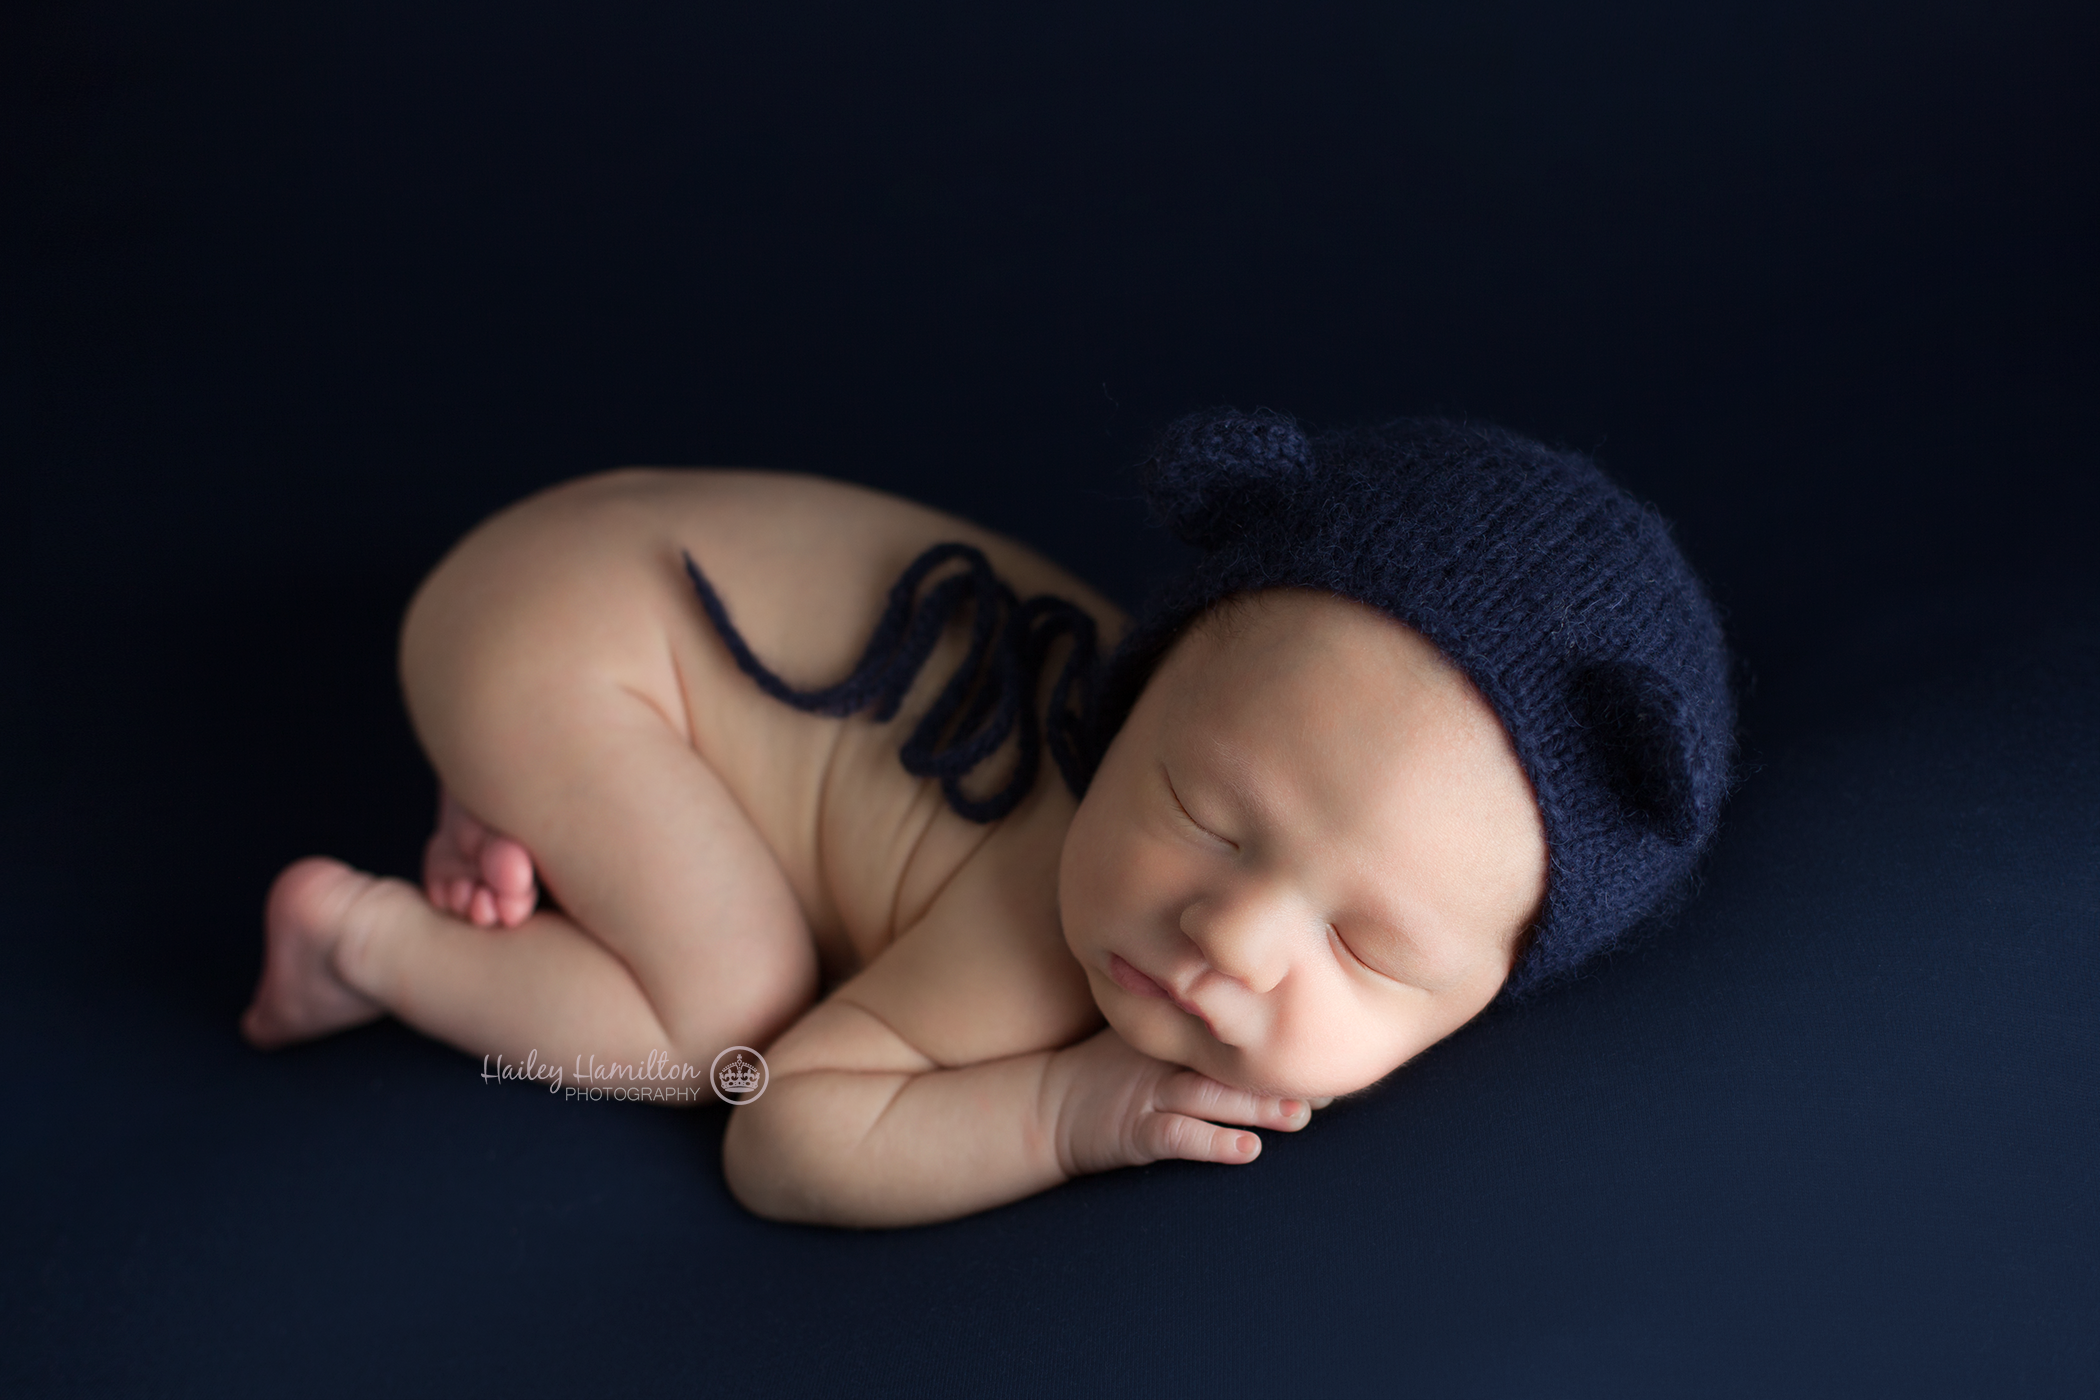 Hailey-Hamilton-Photography-newborn-photo-studio-tushie-up-pose.png